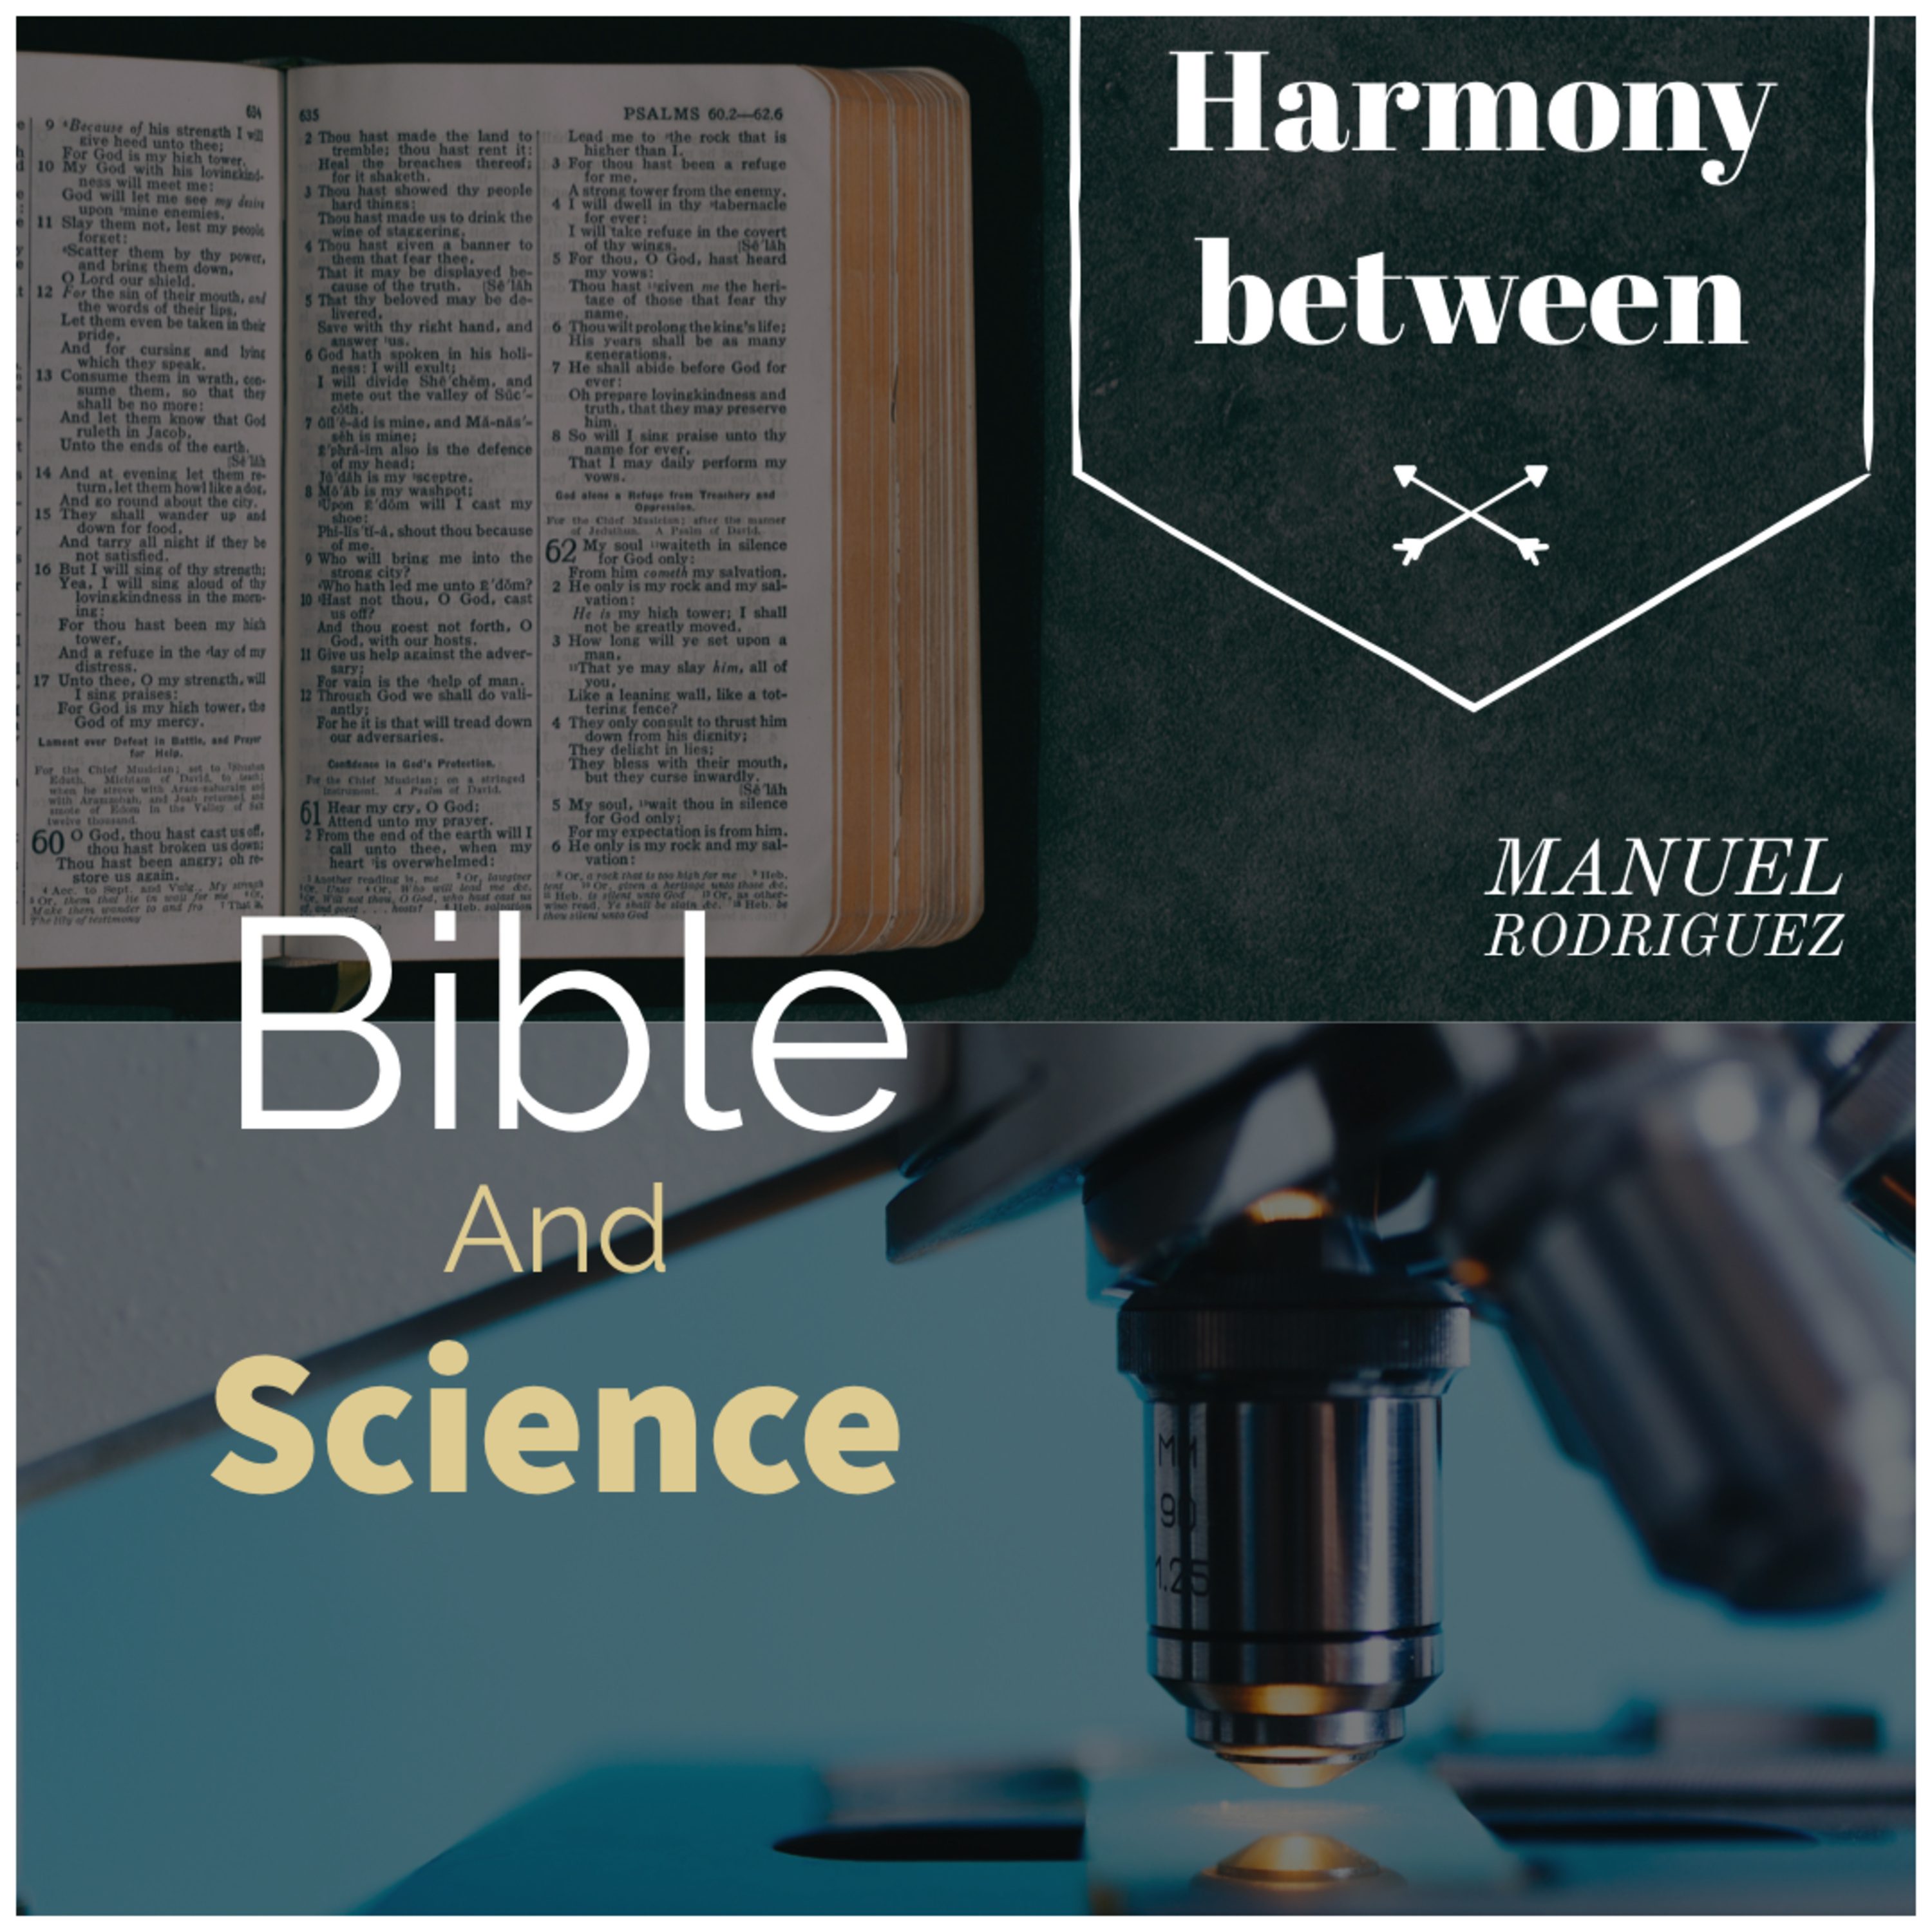 The harmony between the science and the Bible